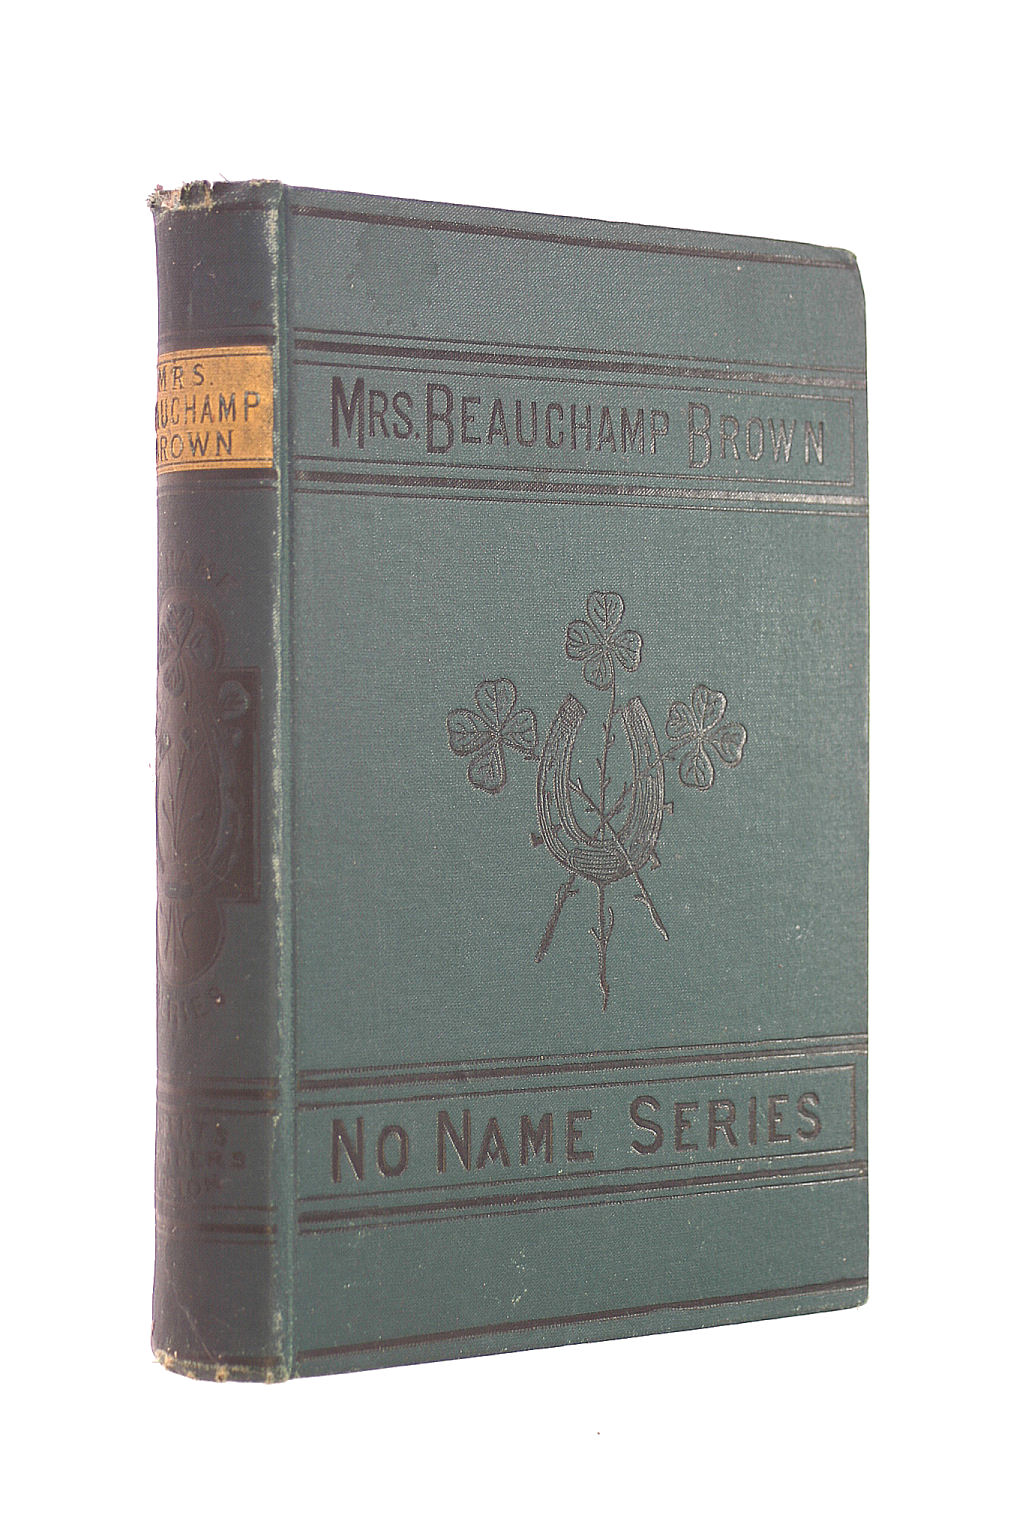 Image for Mrs. Beauchamp Brown (No name series)